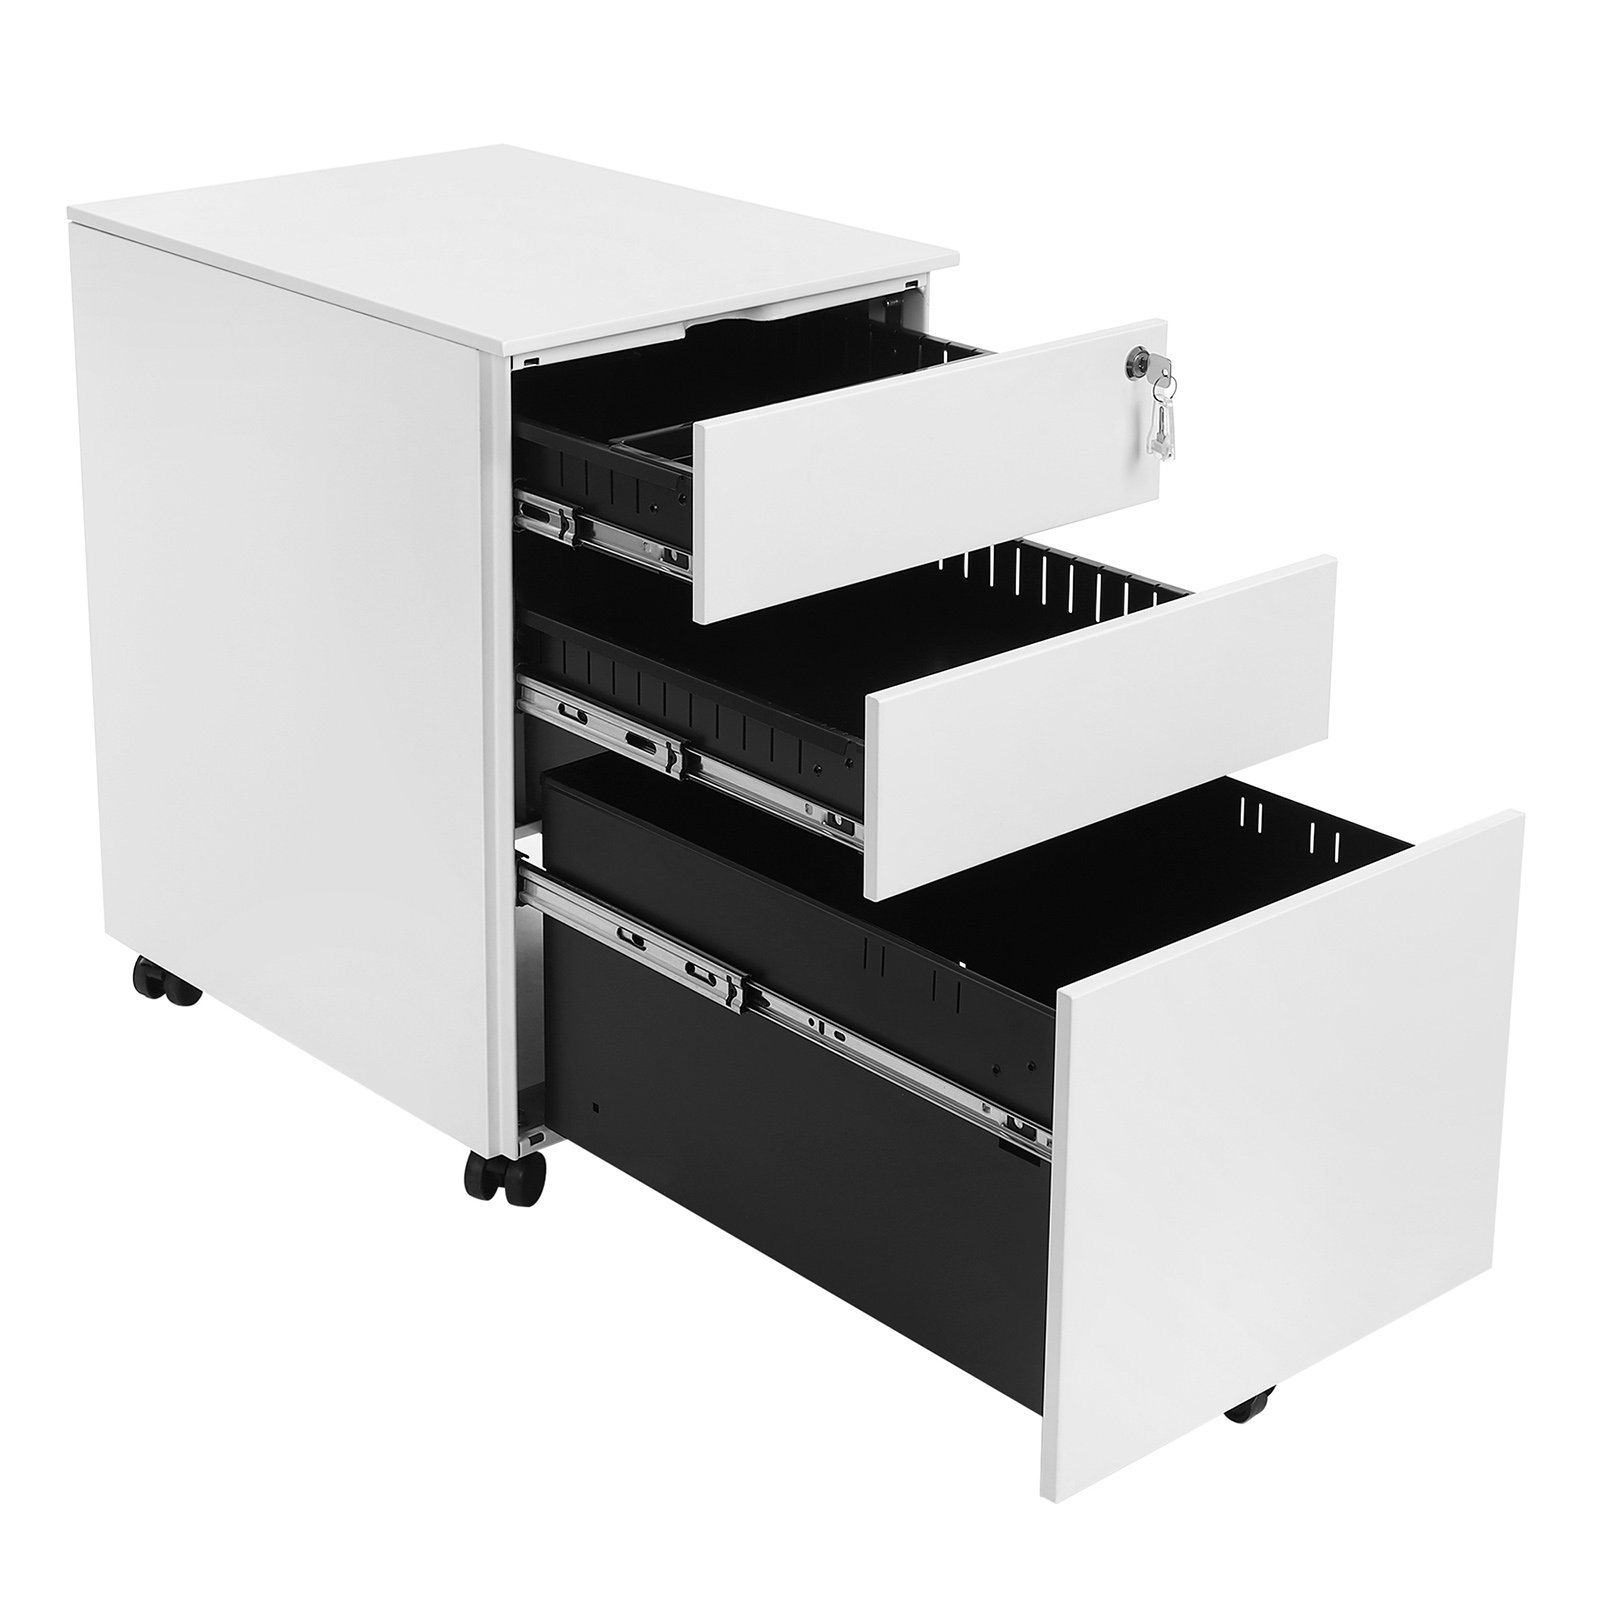 SONGMICS Steel File Cabinet 3 Drawer with Lock Mobile Pedestal Under Desk Fully Assembled Except Casters White UOFC60WT by SONGMICS